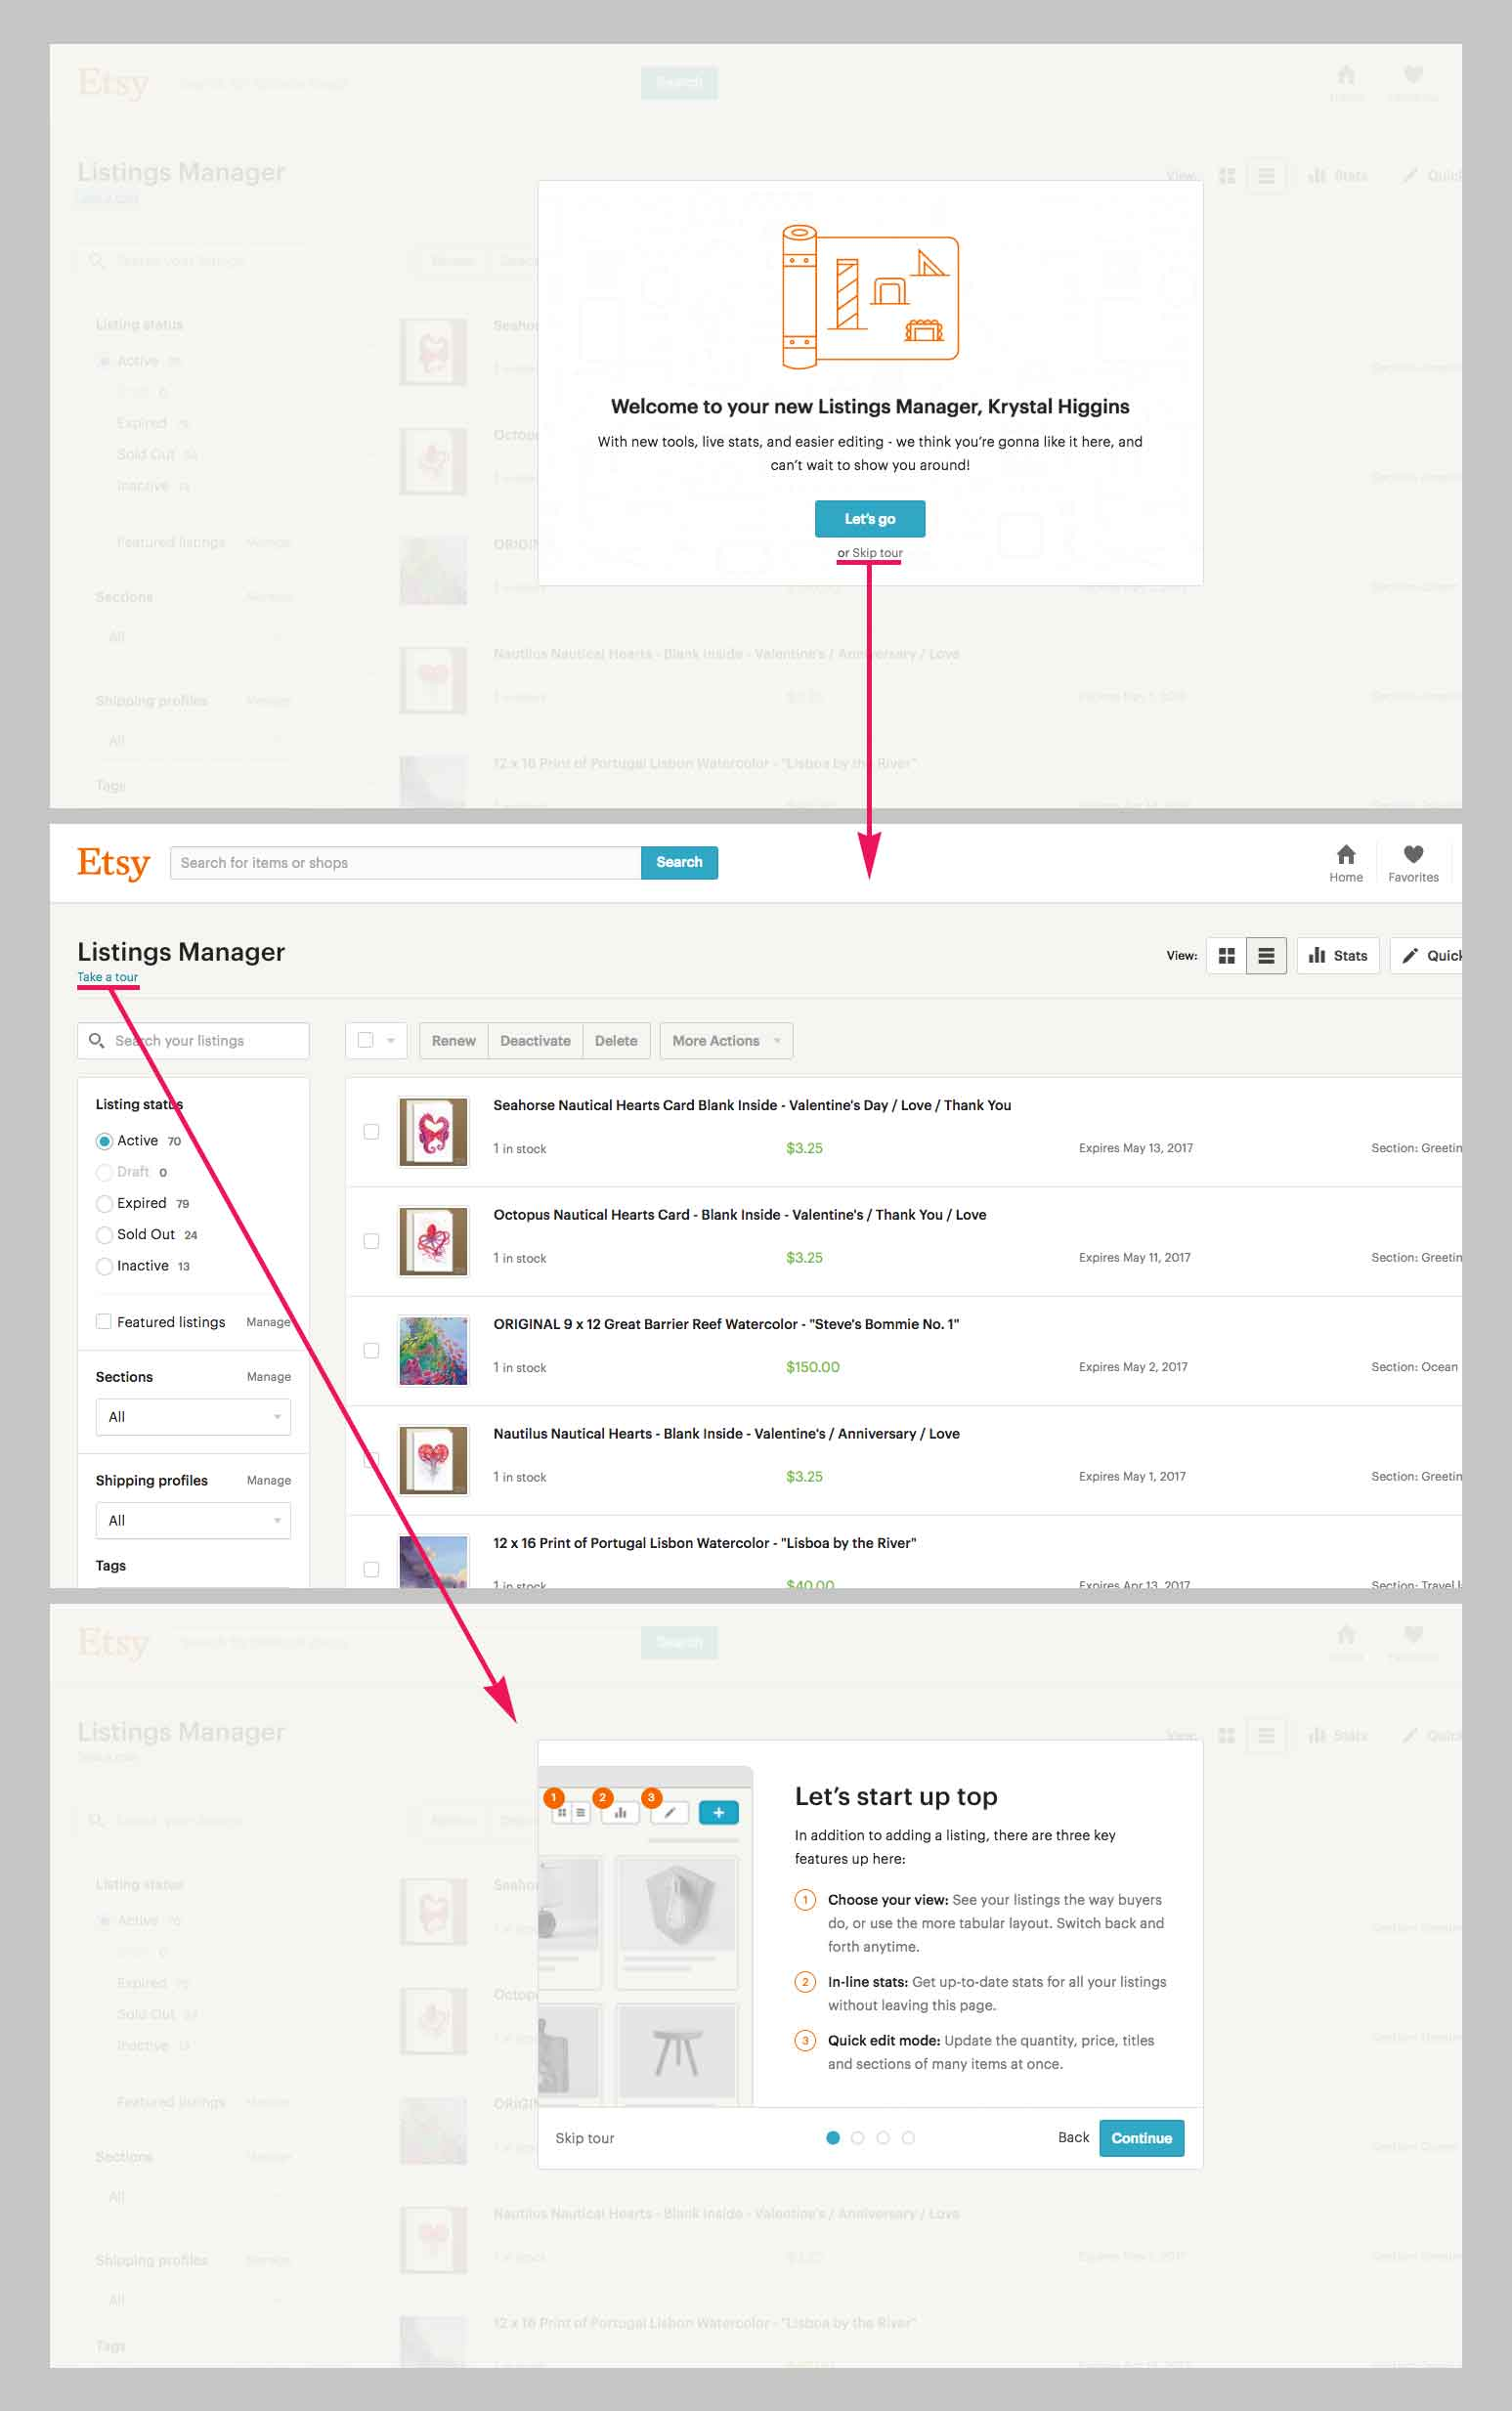 Screenshot showing Etsy's product tour